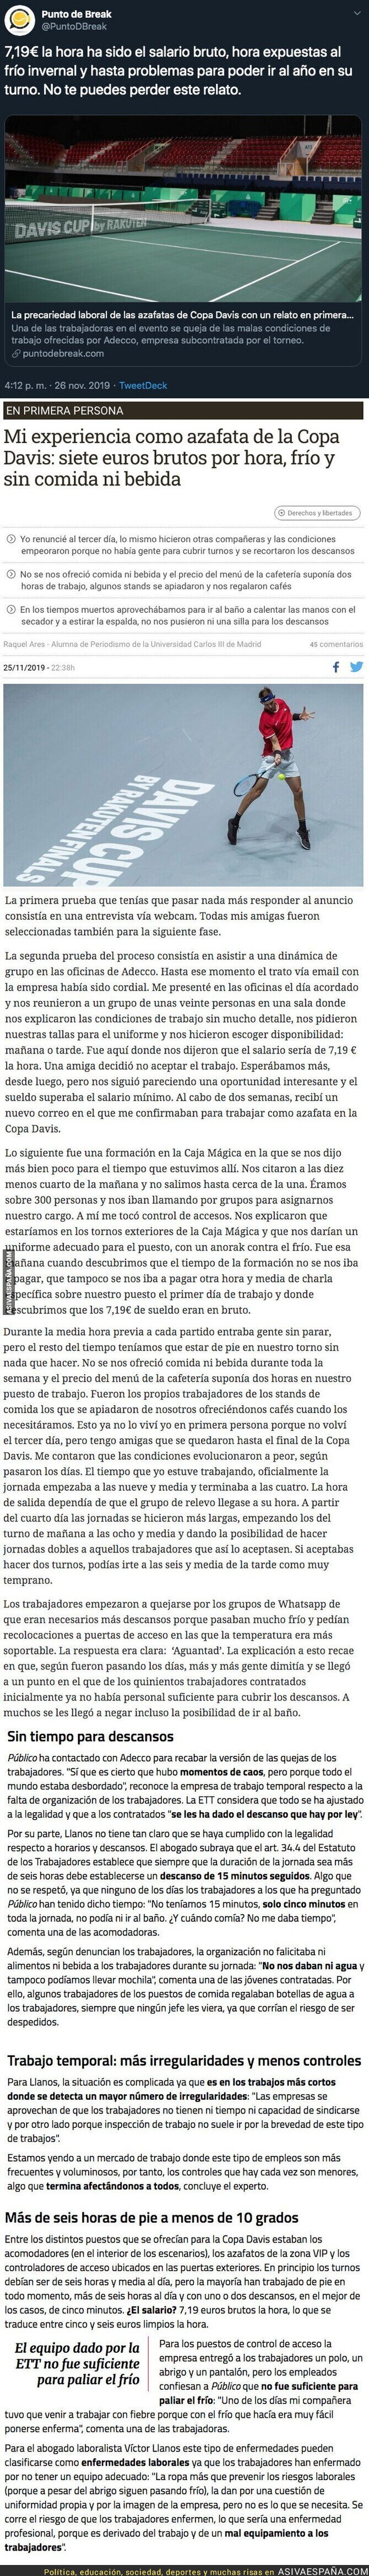 128443 - Estas son las lamentables condiciones laborales de los trabajadores de la Copa Davis de Piqué y el salario que les pagaban